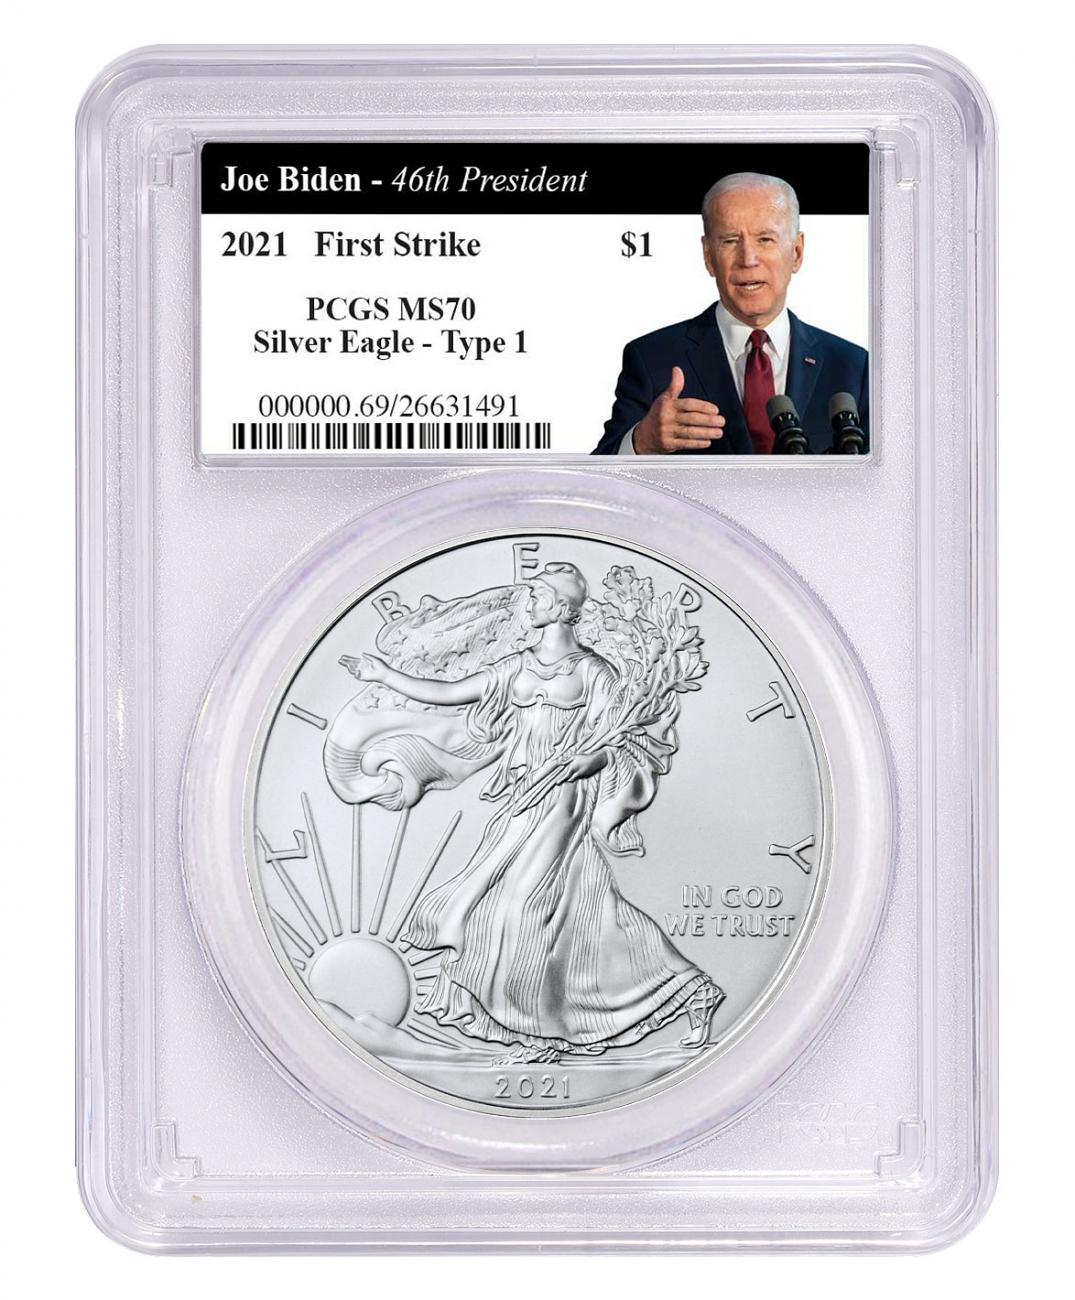 2021 American Silver Eagle T-1 PCGS MS70 FS Biden Thumbs Up Label